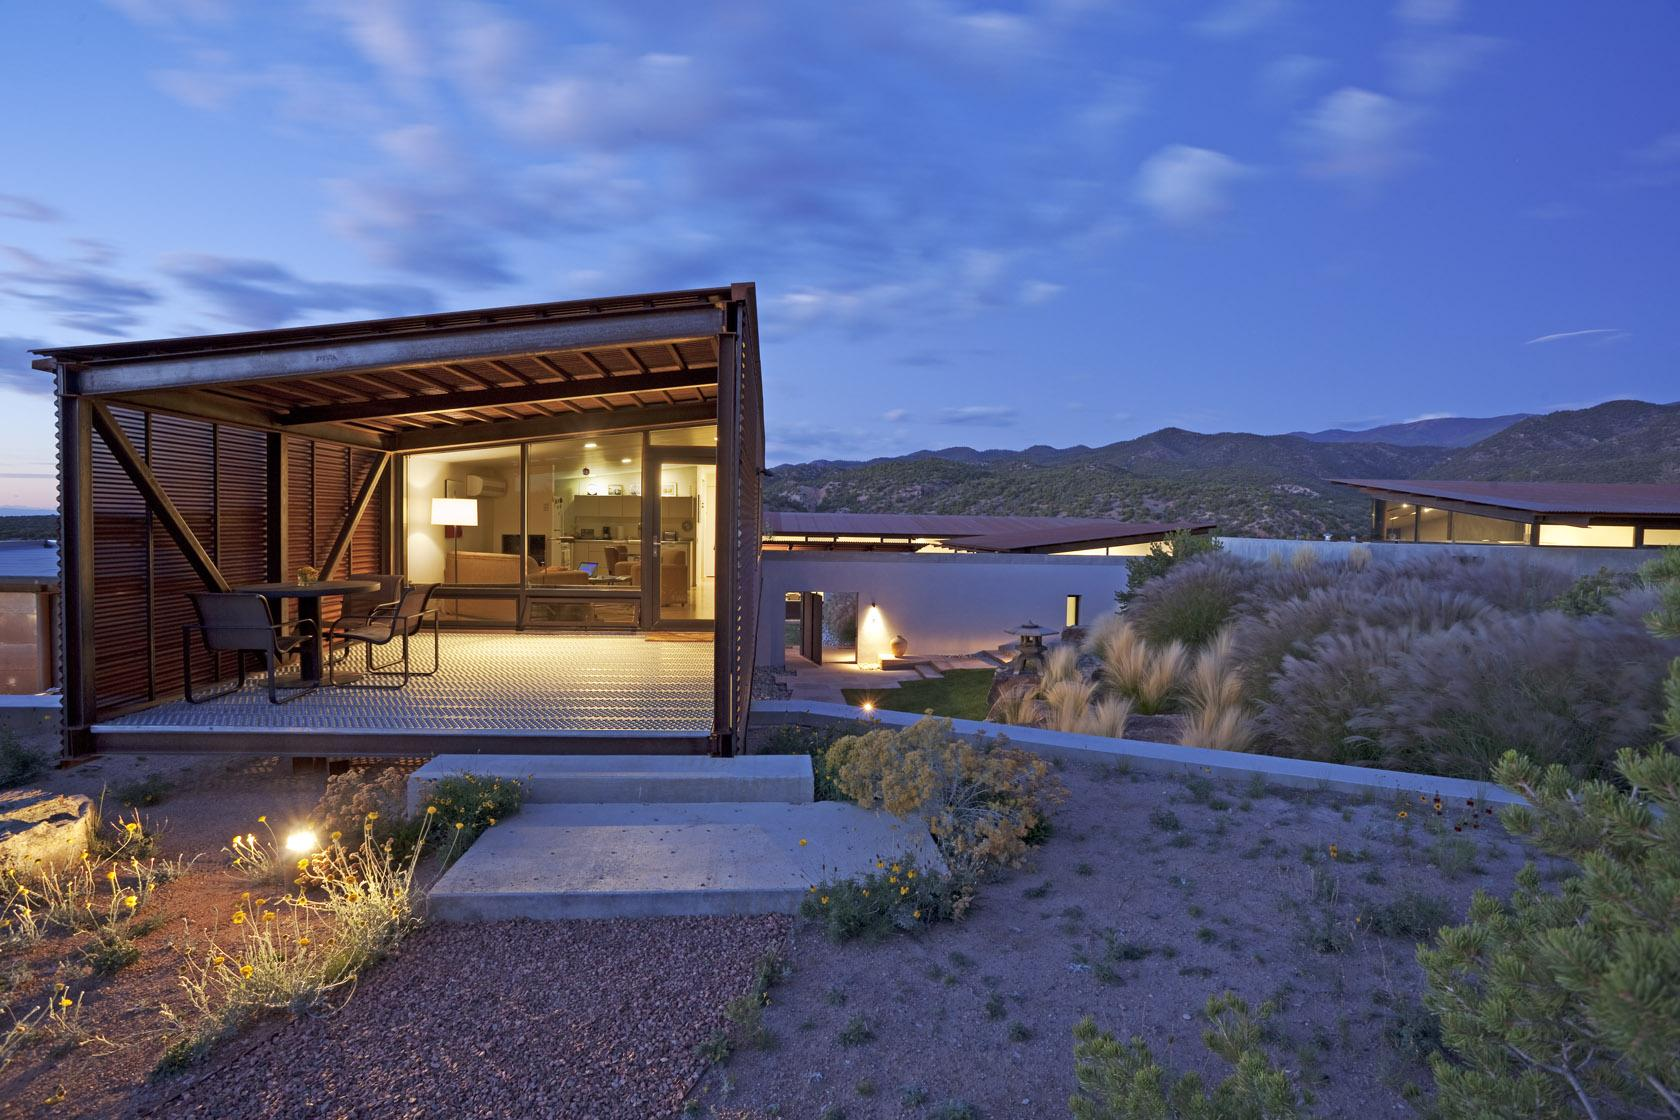 Lake Flato Desert House in Santa Fe